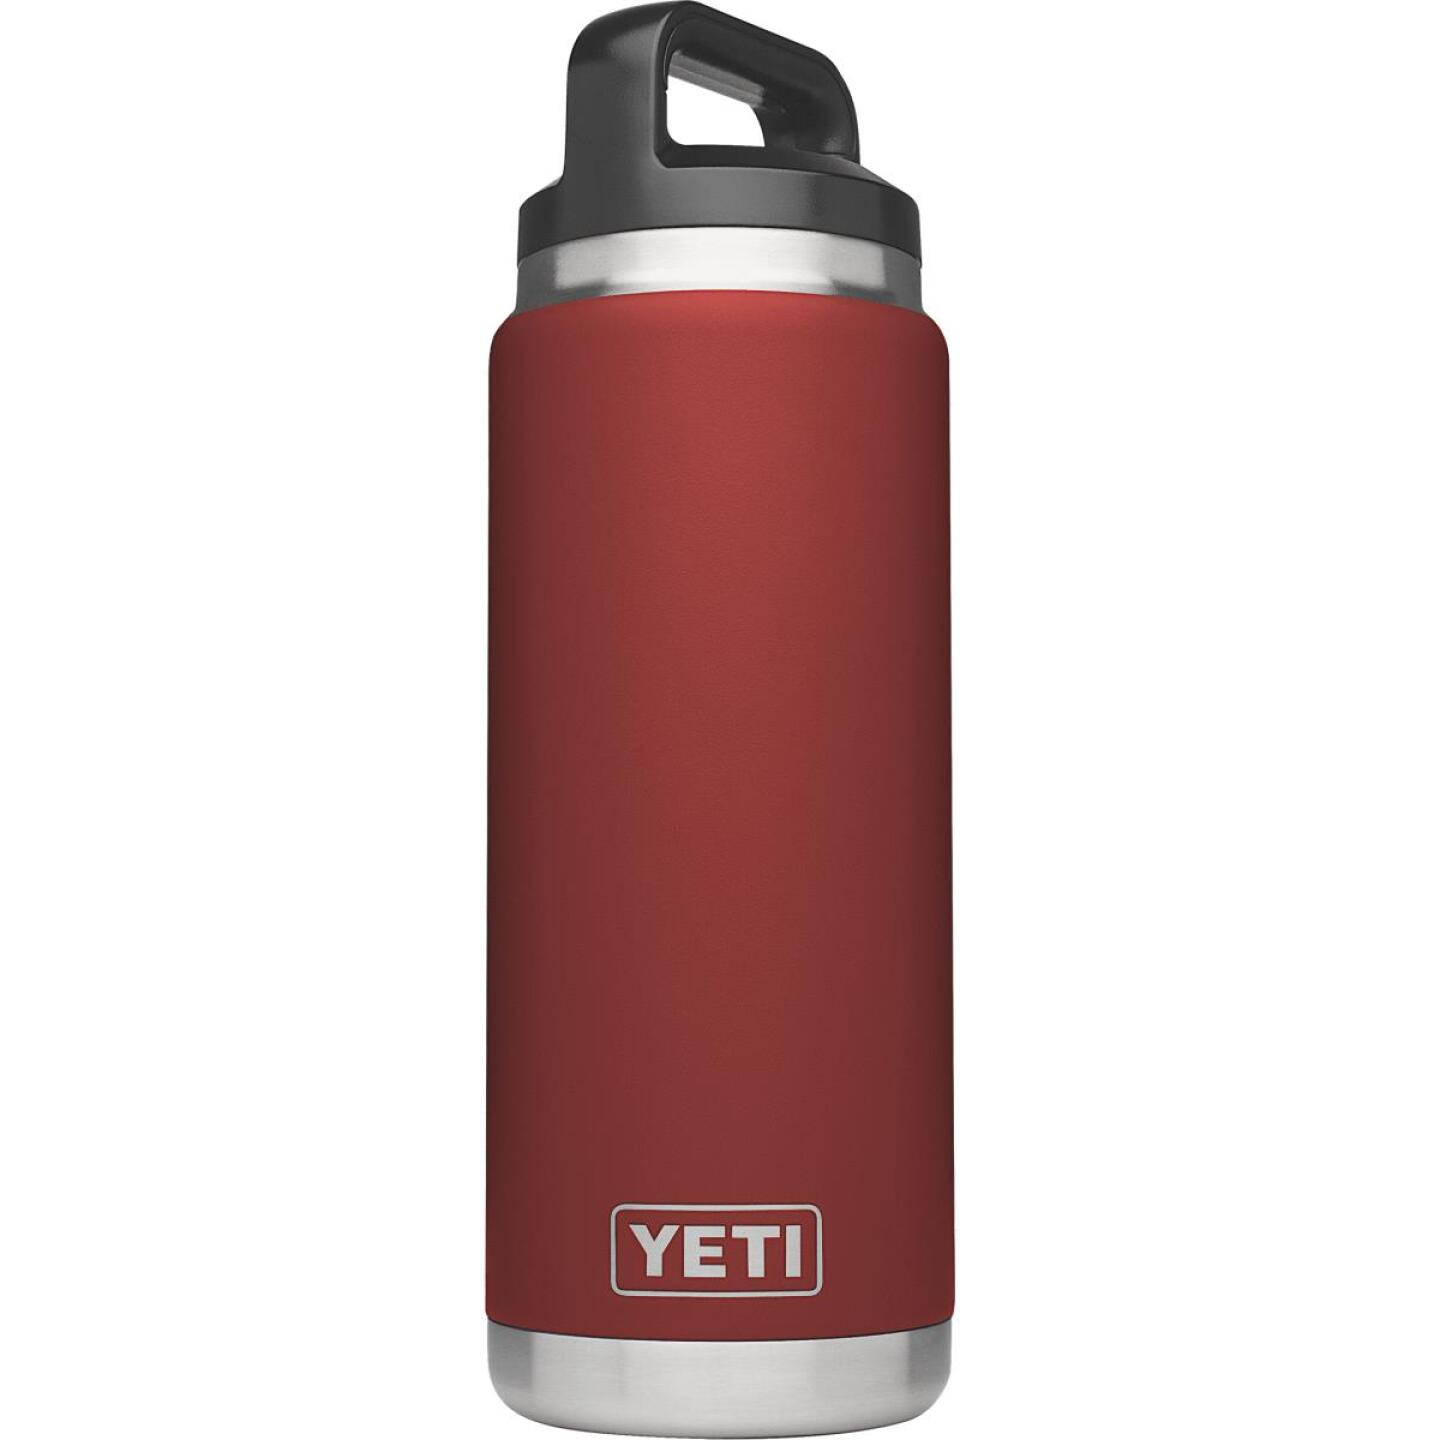 Yeti Rambler 26 Oz. Brick Red Stainless Steel Insulated Vacuum Bottle Image 1